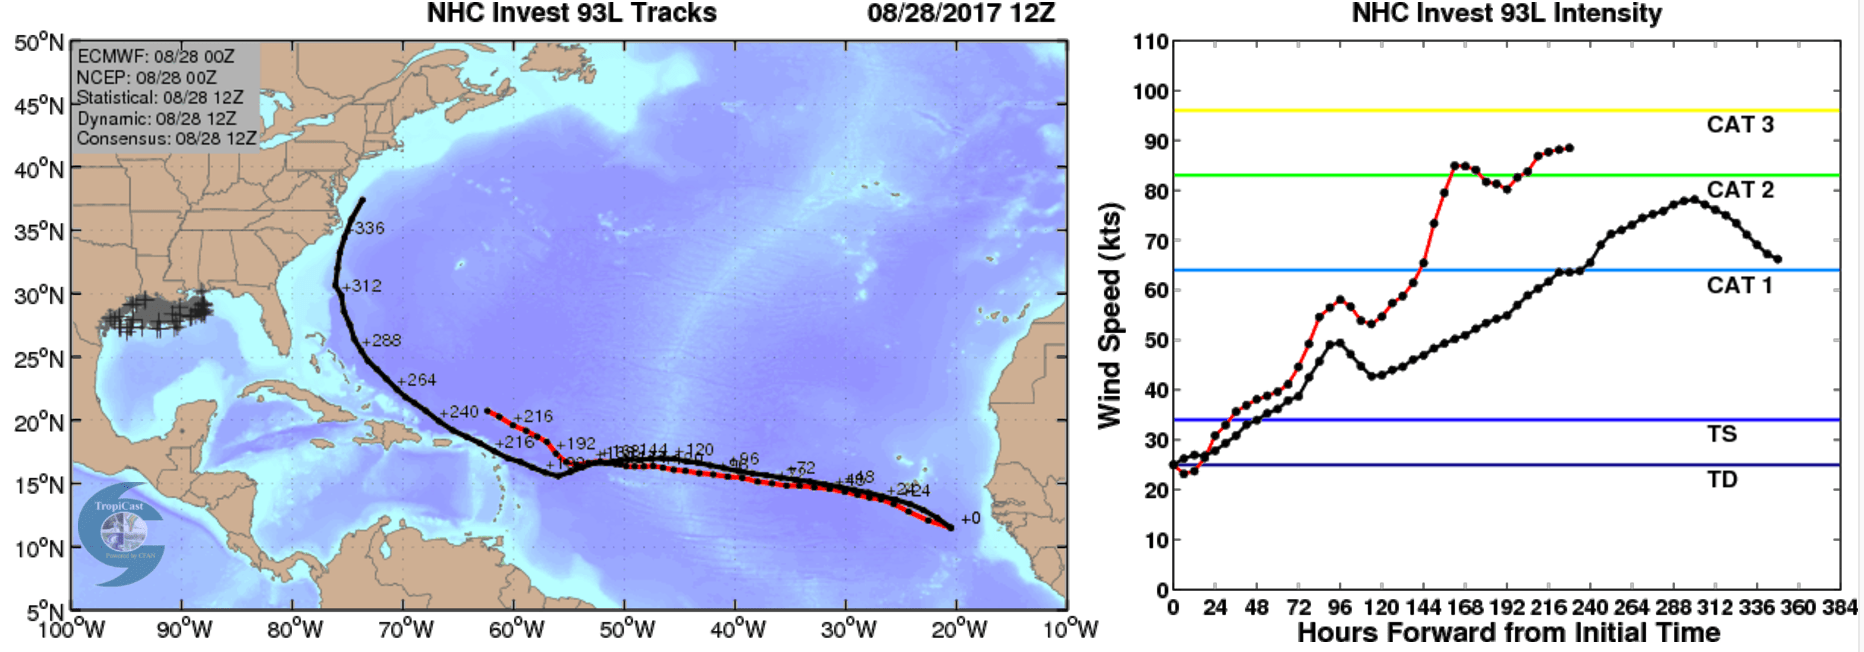 hight resolution of the plot below shows an early forecast from cfan showing cfan s calibrated tracks and intensities for the ecwmf deterministic red and the ensemble mean